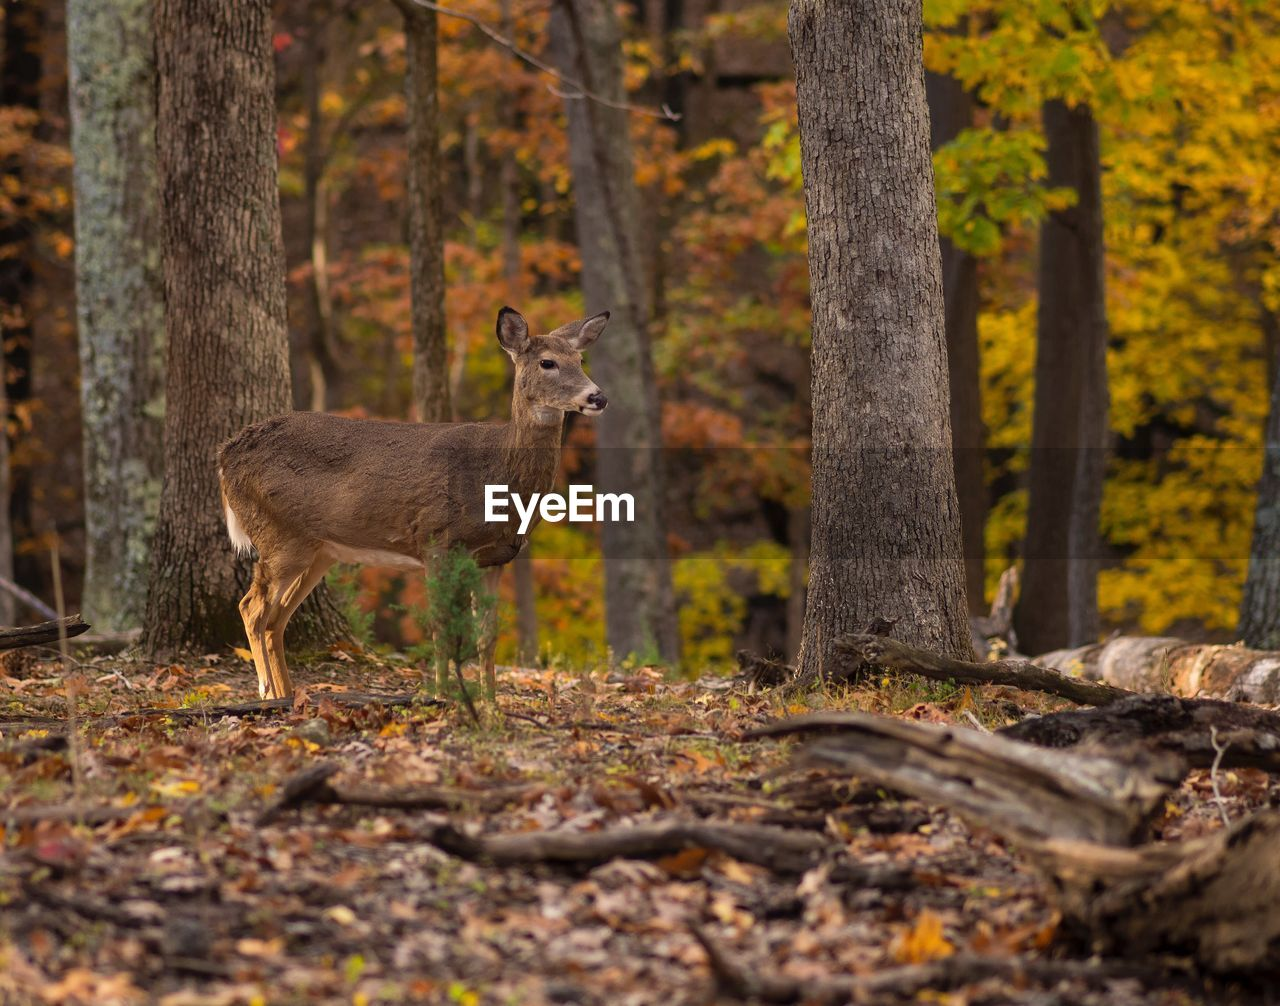 animal themes, tree, animal, forest, animal wildlife, one animal, animals in the wild, standing, land, mammal, deer, tree trunk, trunk, plant, nature, autumn, day, no people, vertebrate, outdoors, woodland, herbivorous, change